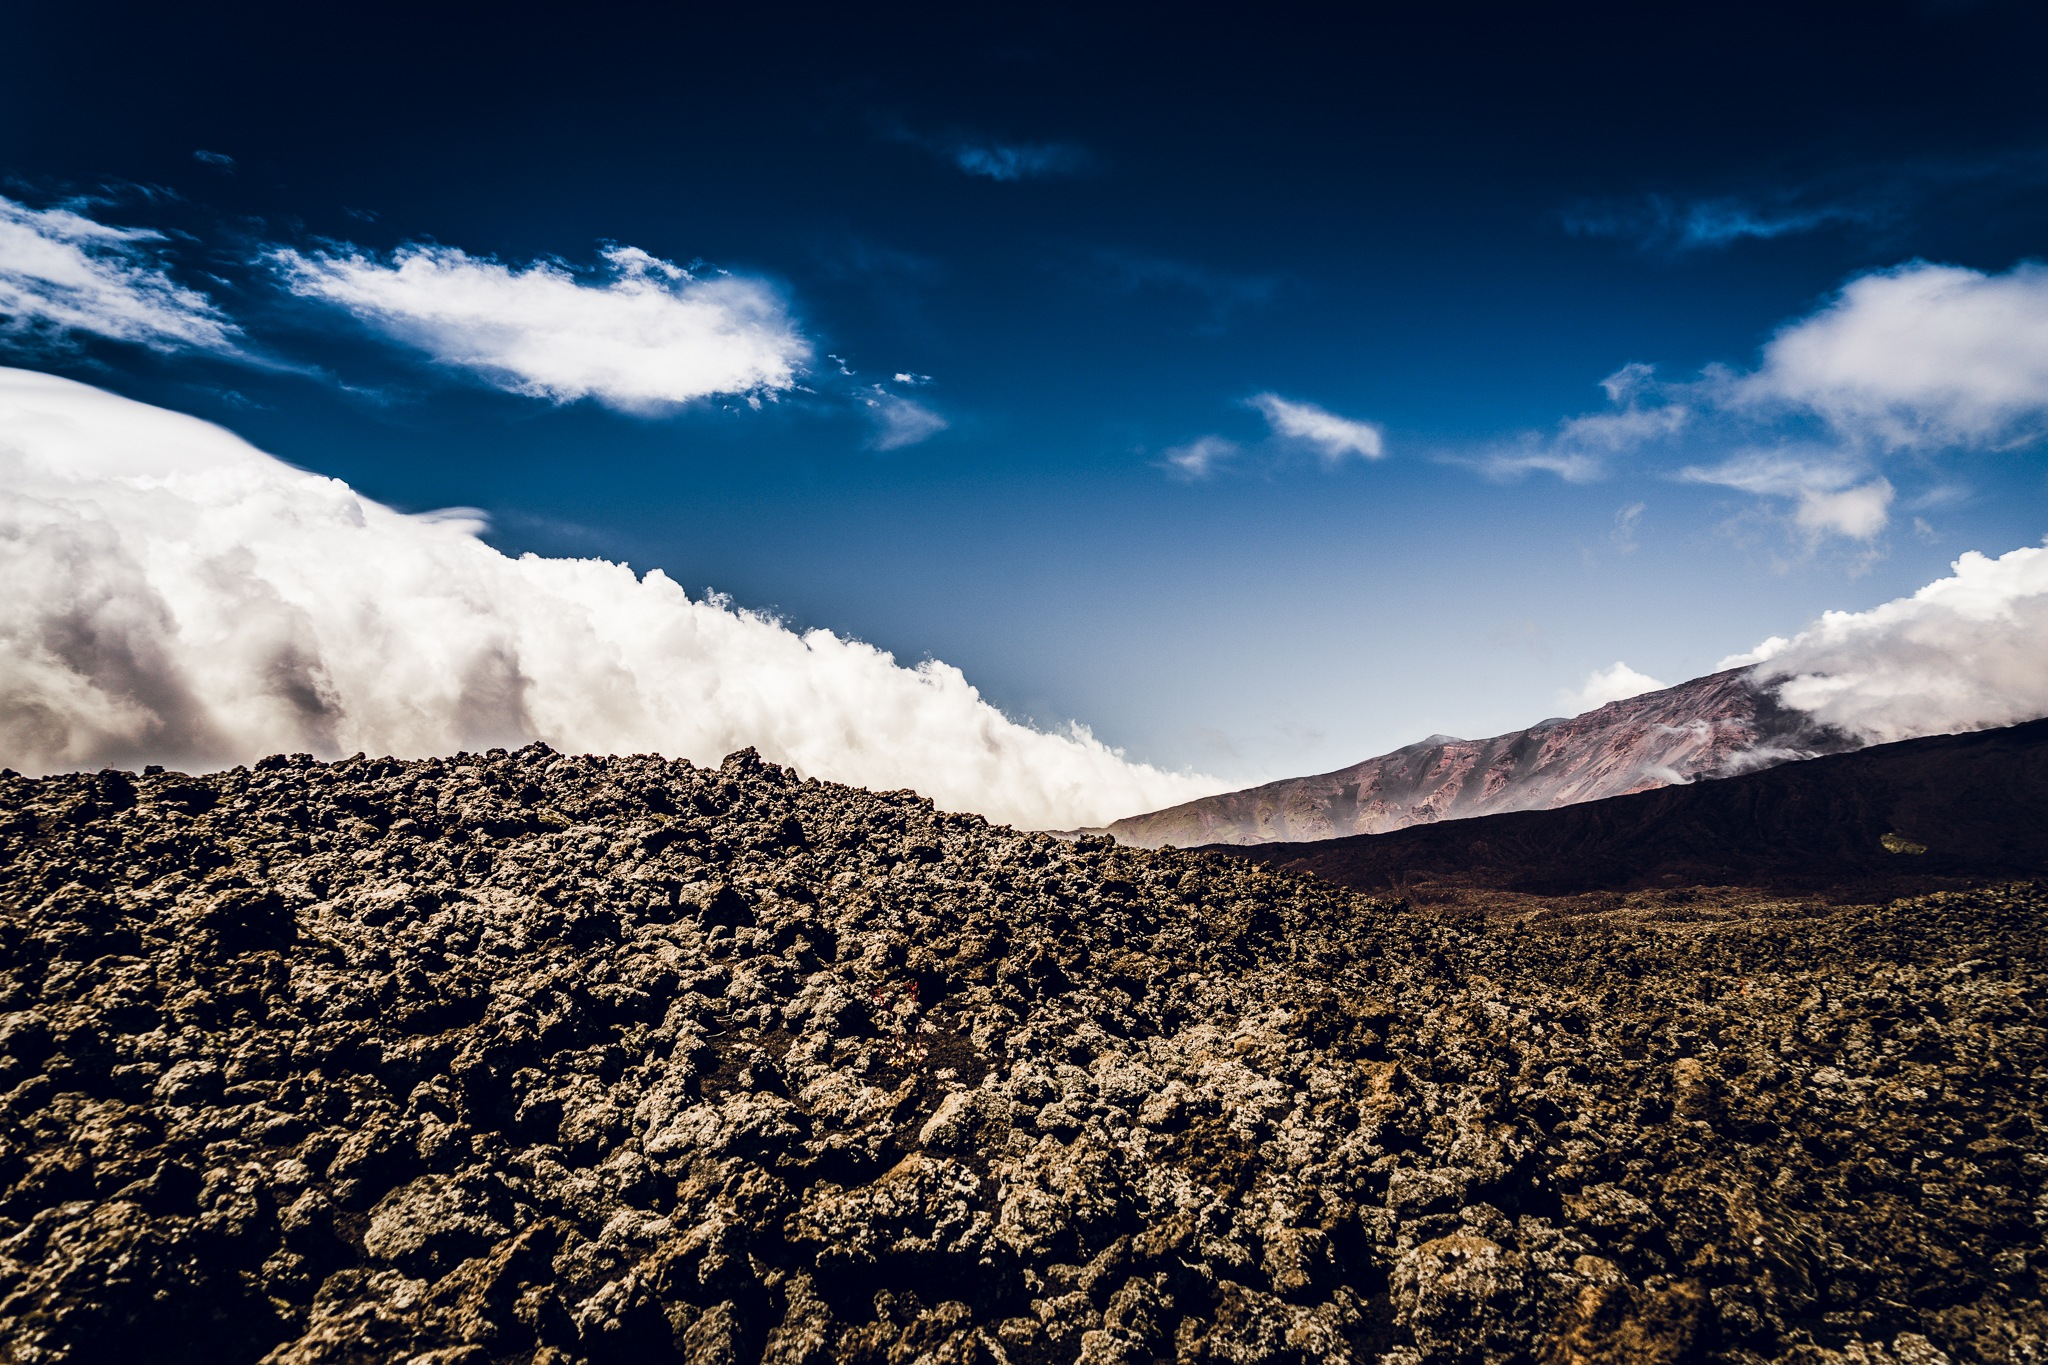 Mount Etna by Andreas Mariotti